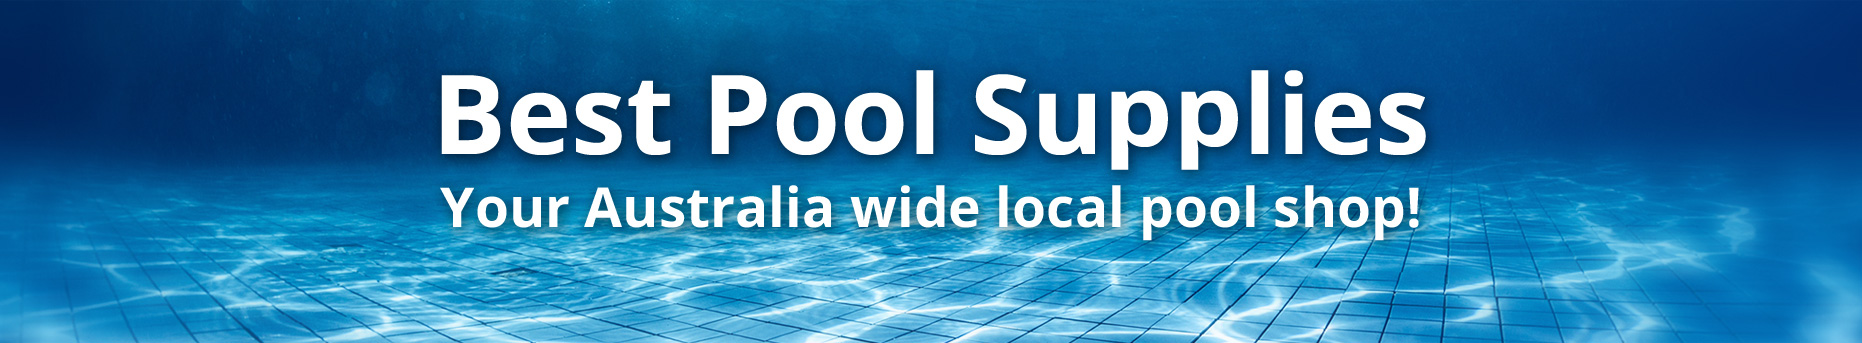 Best Pool Supplies Pool Supplies Pool Cleaners Pool